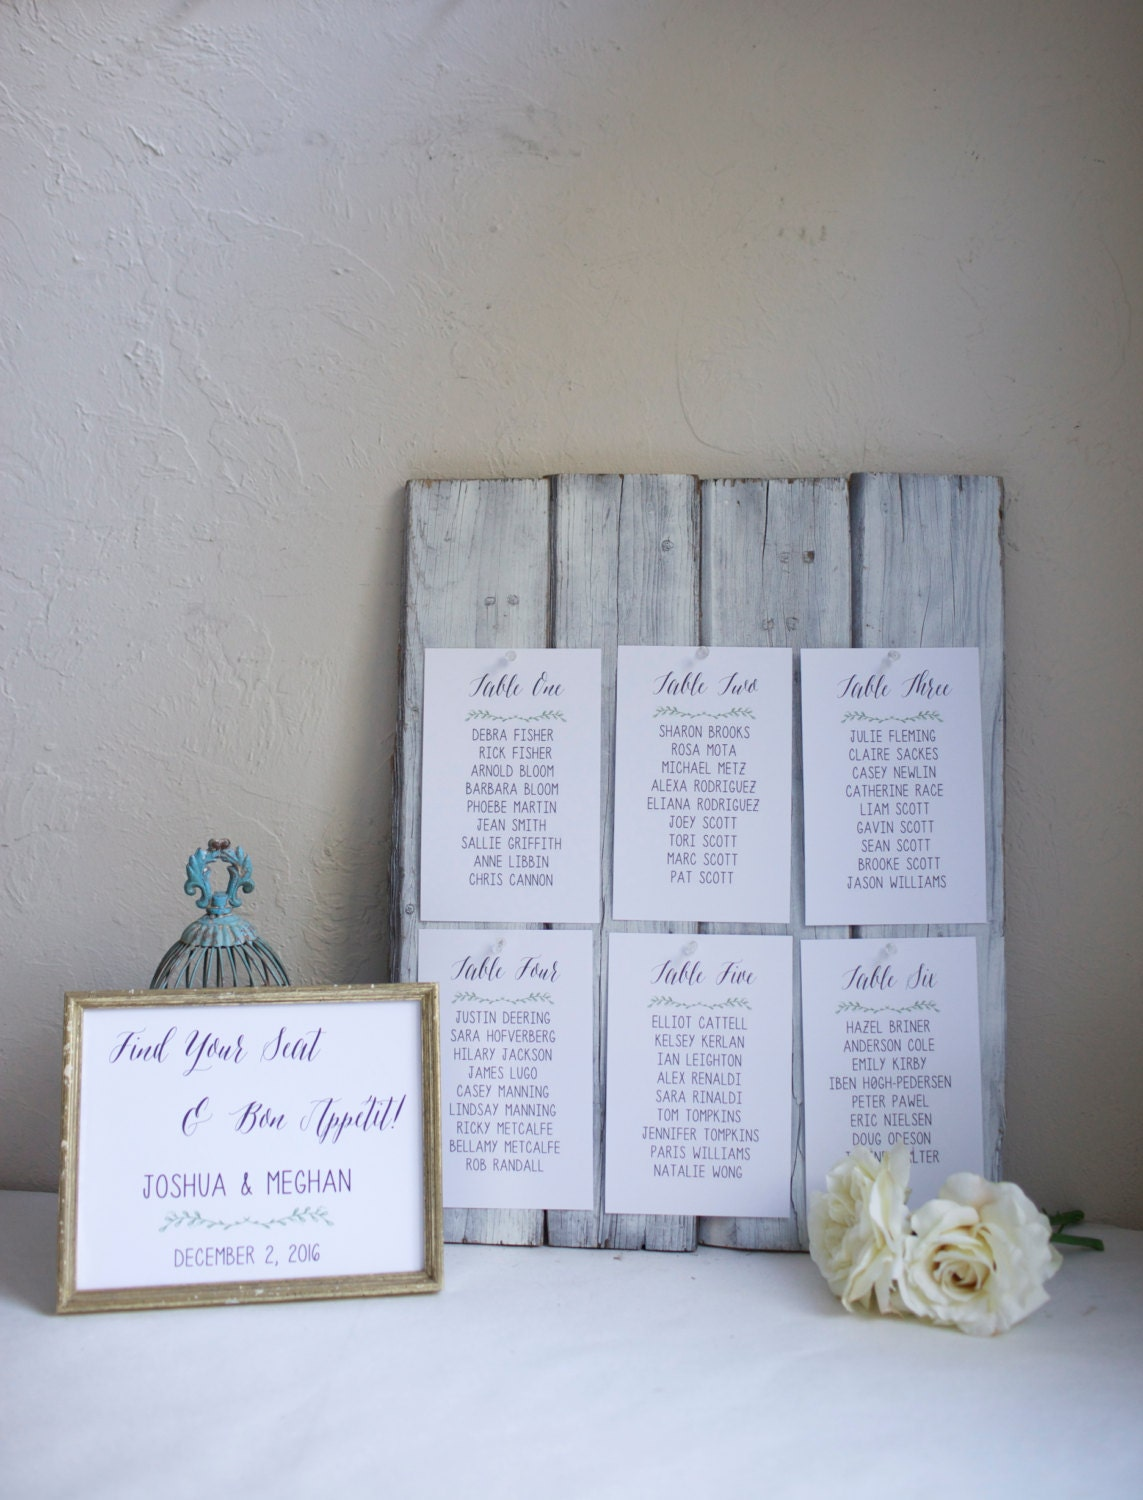 Printable Wedding Seating Chart. Choose Digital Download or Print & Ship. Custom personalized seating. Table numbers or names. Escort cards